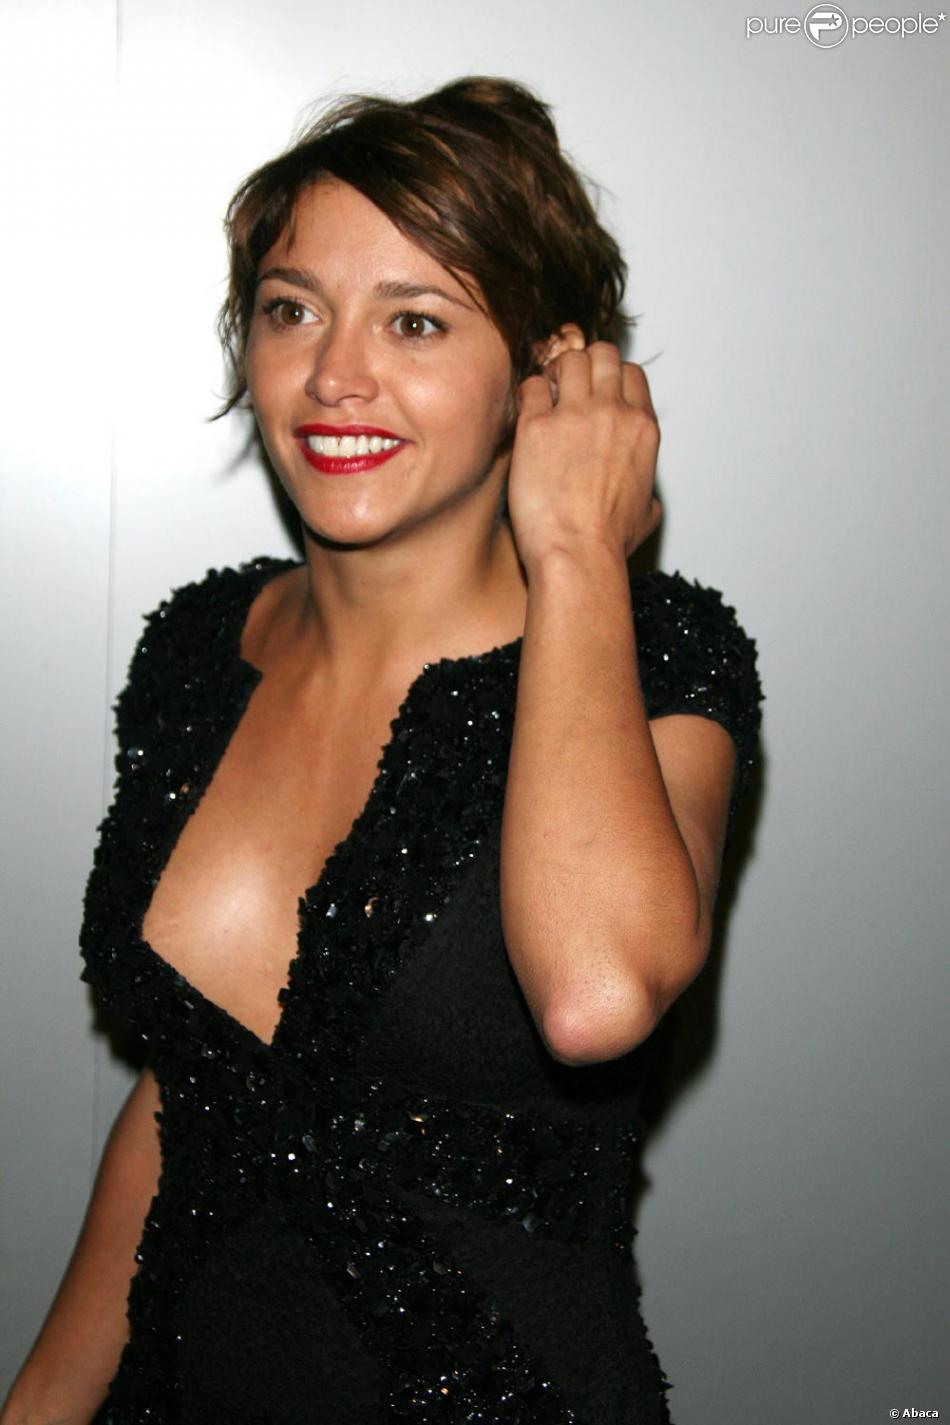 Emma de Caunes nudes (96 photos) Ass, Snapchat, swimsuit